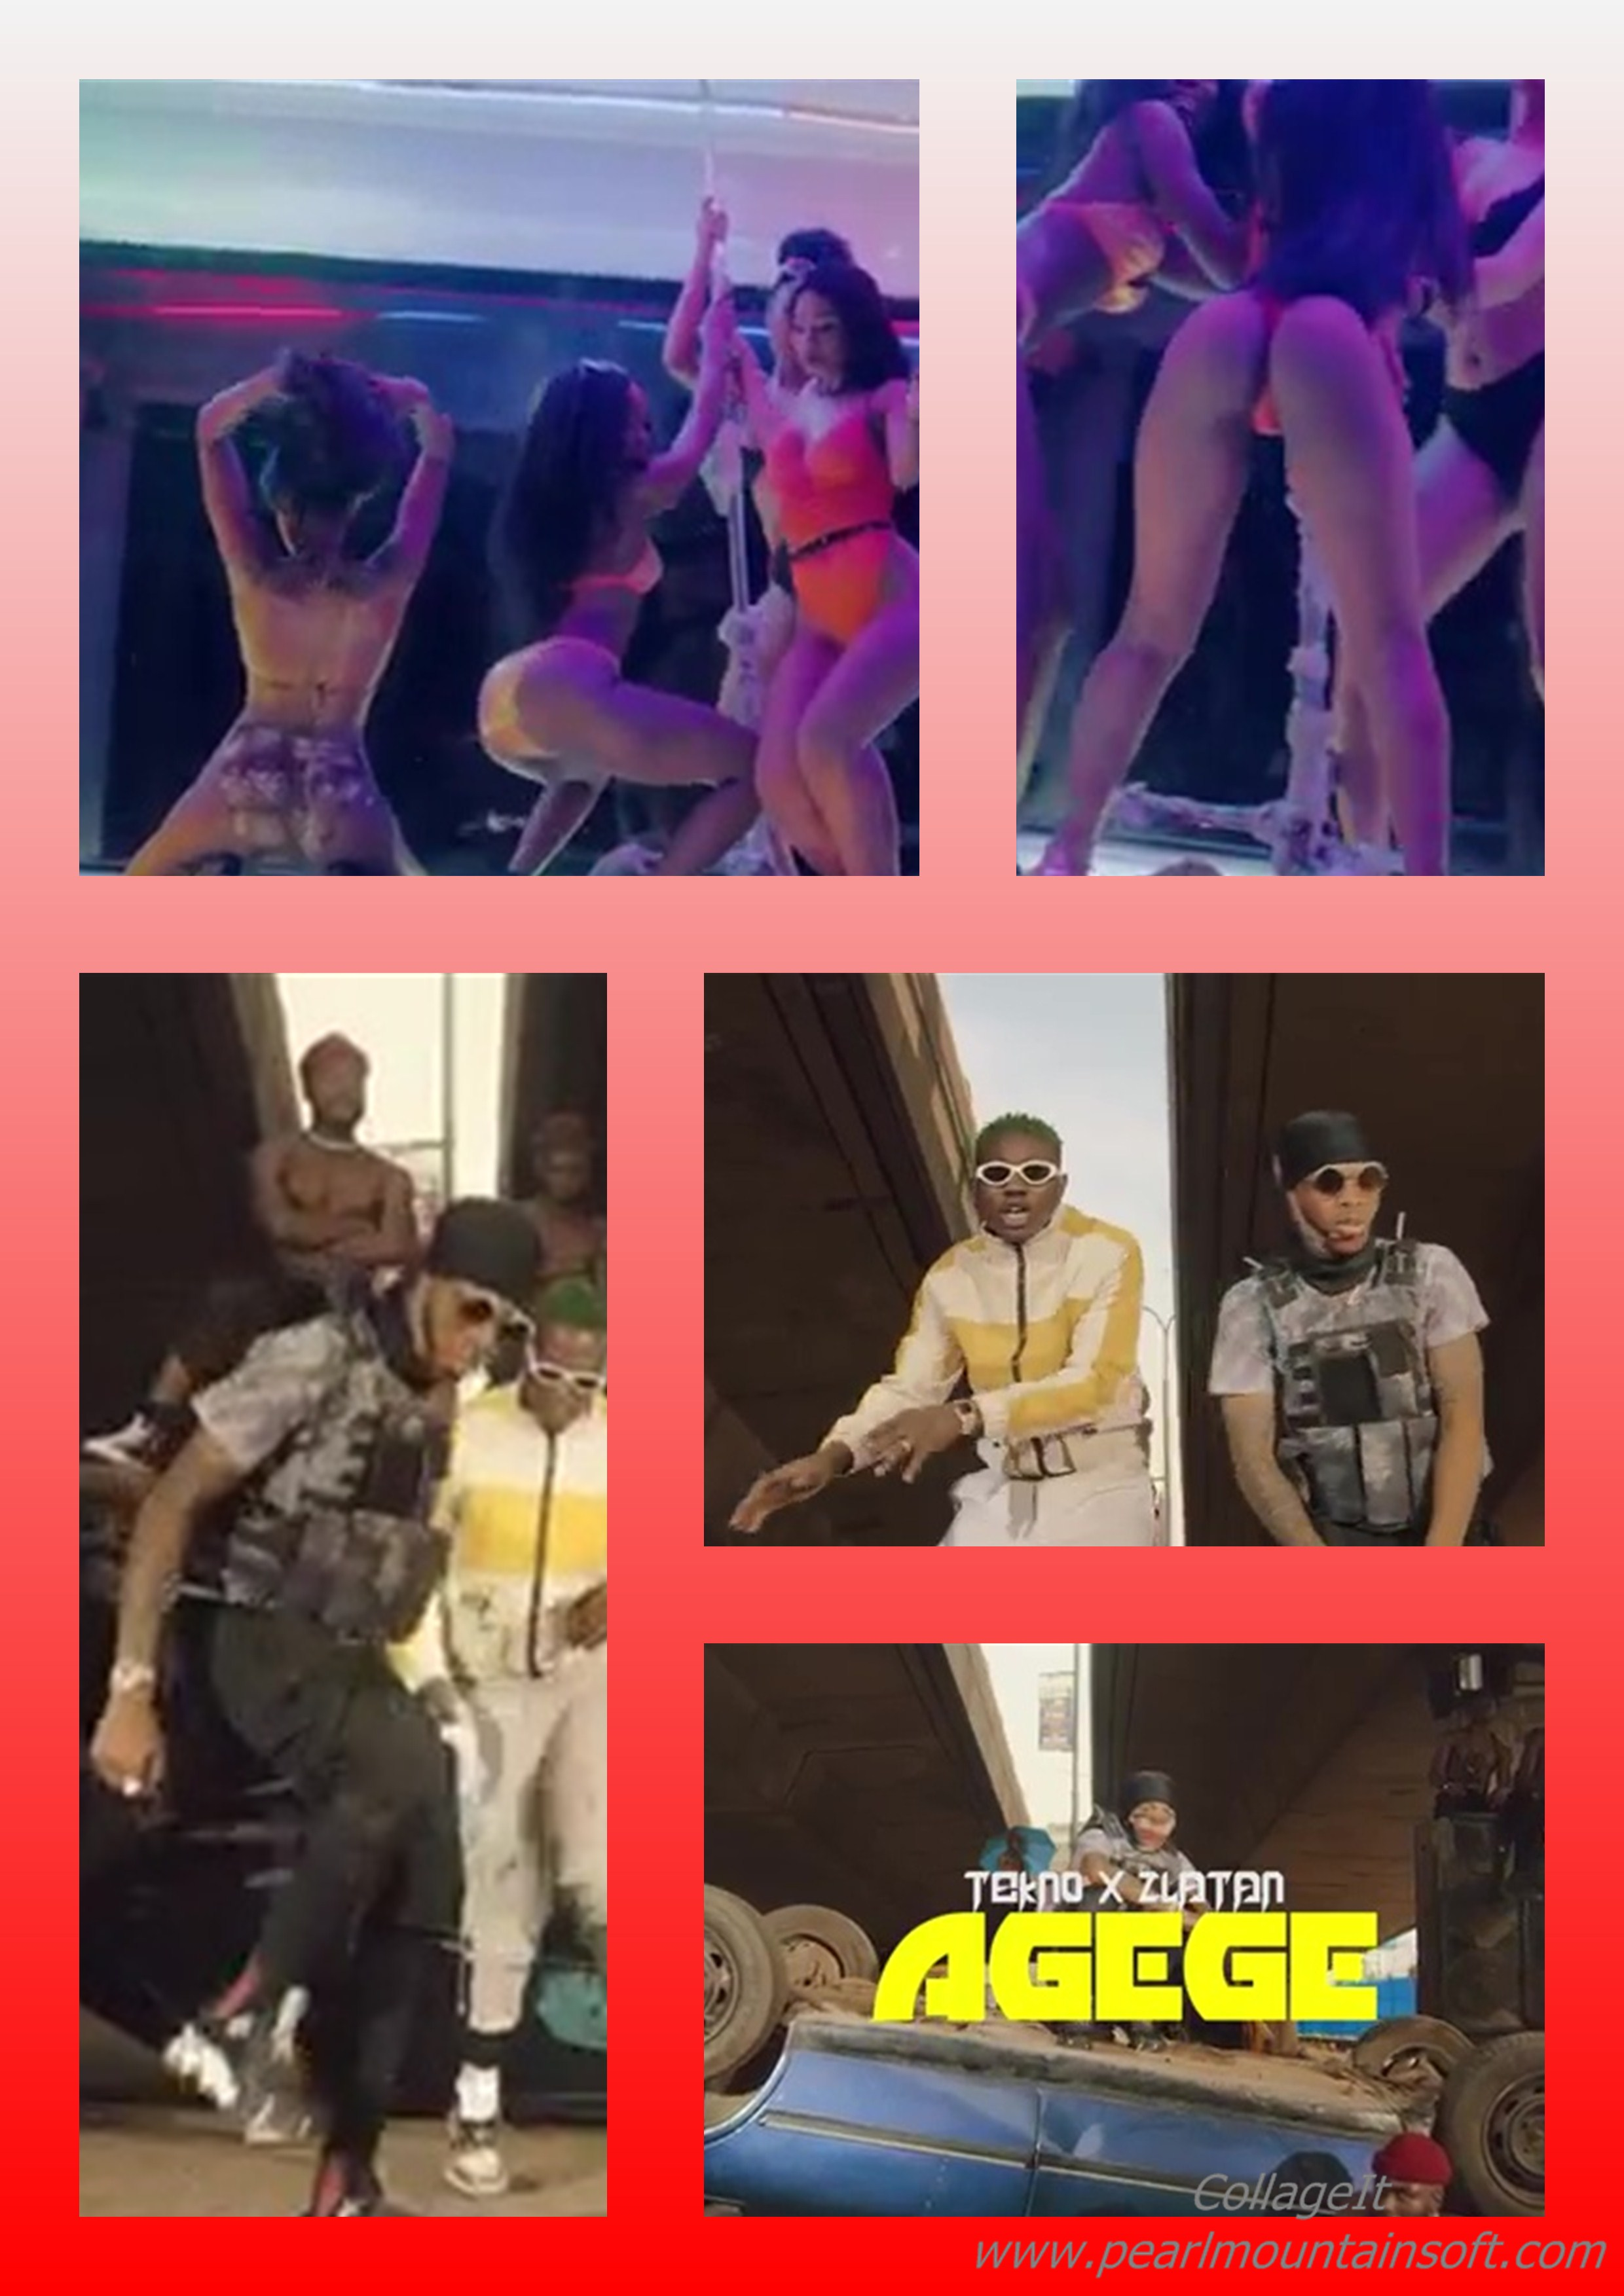 "(+LYRICS+TRANSLATION+MEANING) MUSIC REVIEW: AGEGE BY TECKNO FT ZLATAN "" ""THE FG DEY FUNNY, I EVEN THOUGHT THOSE GIRLS WERE BRA-LESS AND PANT-LESS….NEVERTHELESS THESE AGEGE LYRICS ARE SO BORING!"